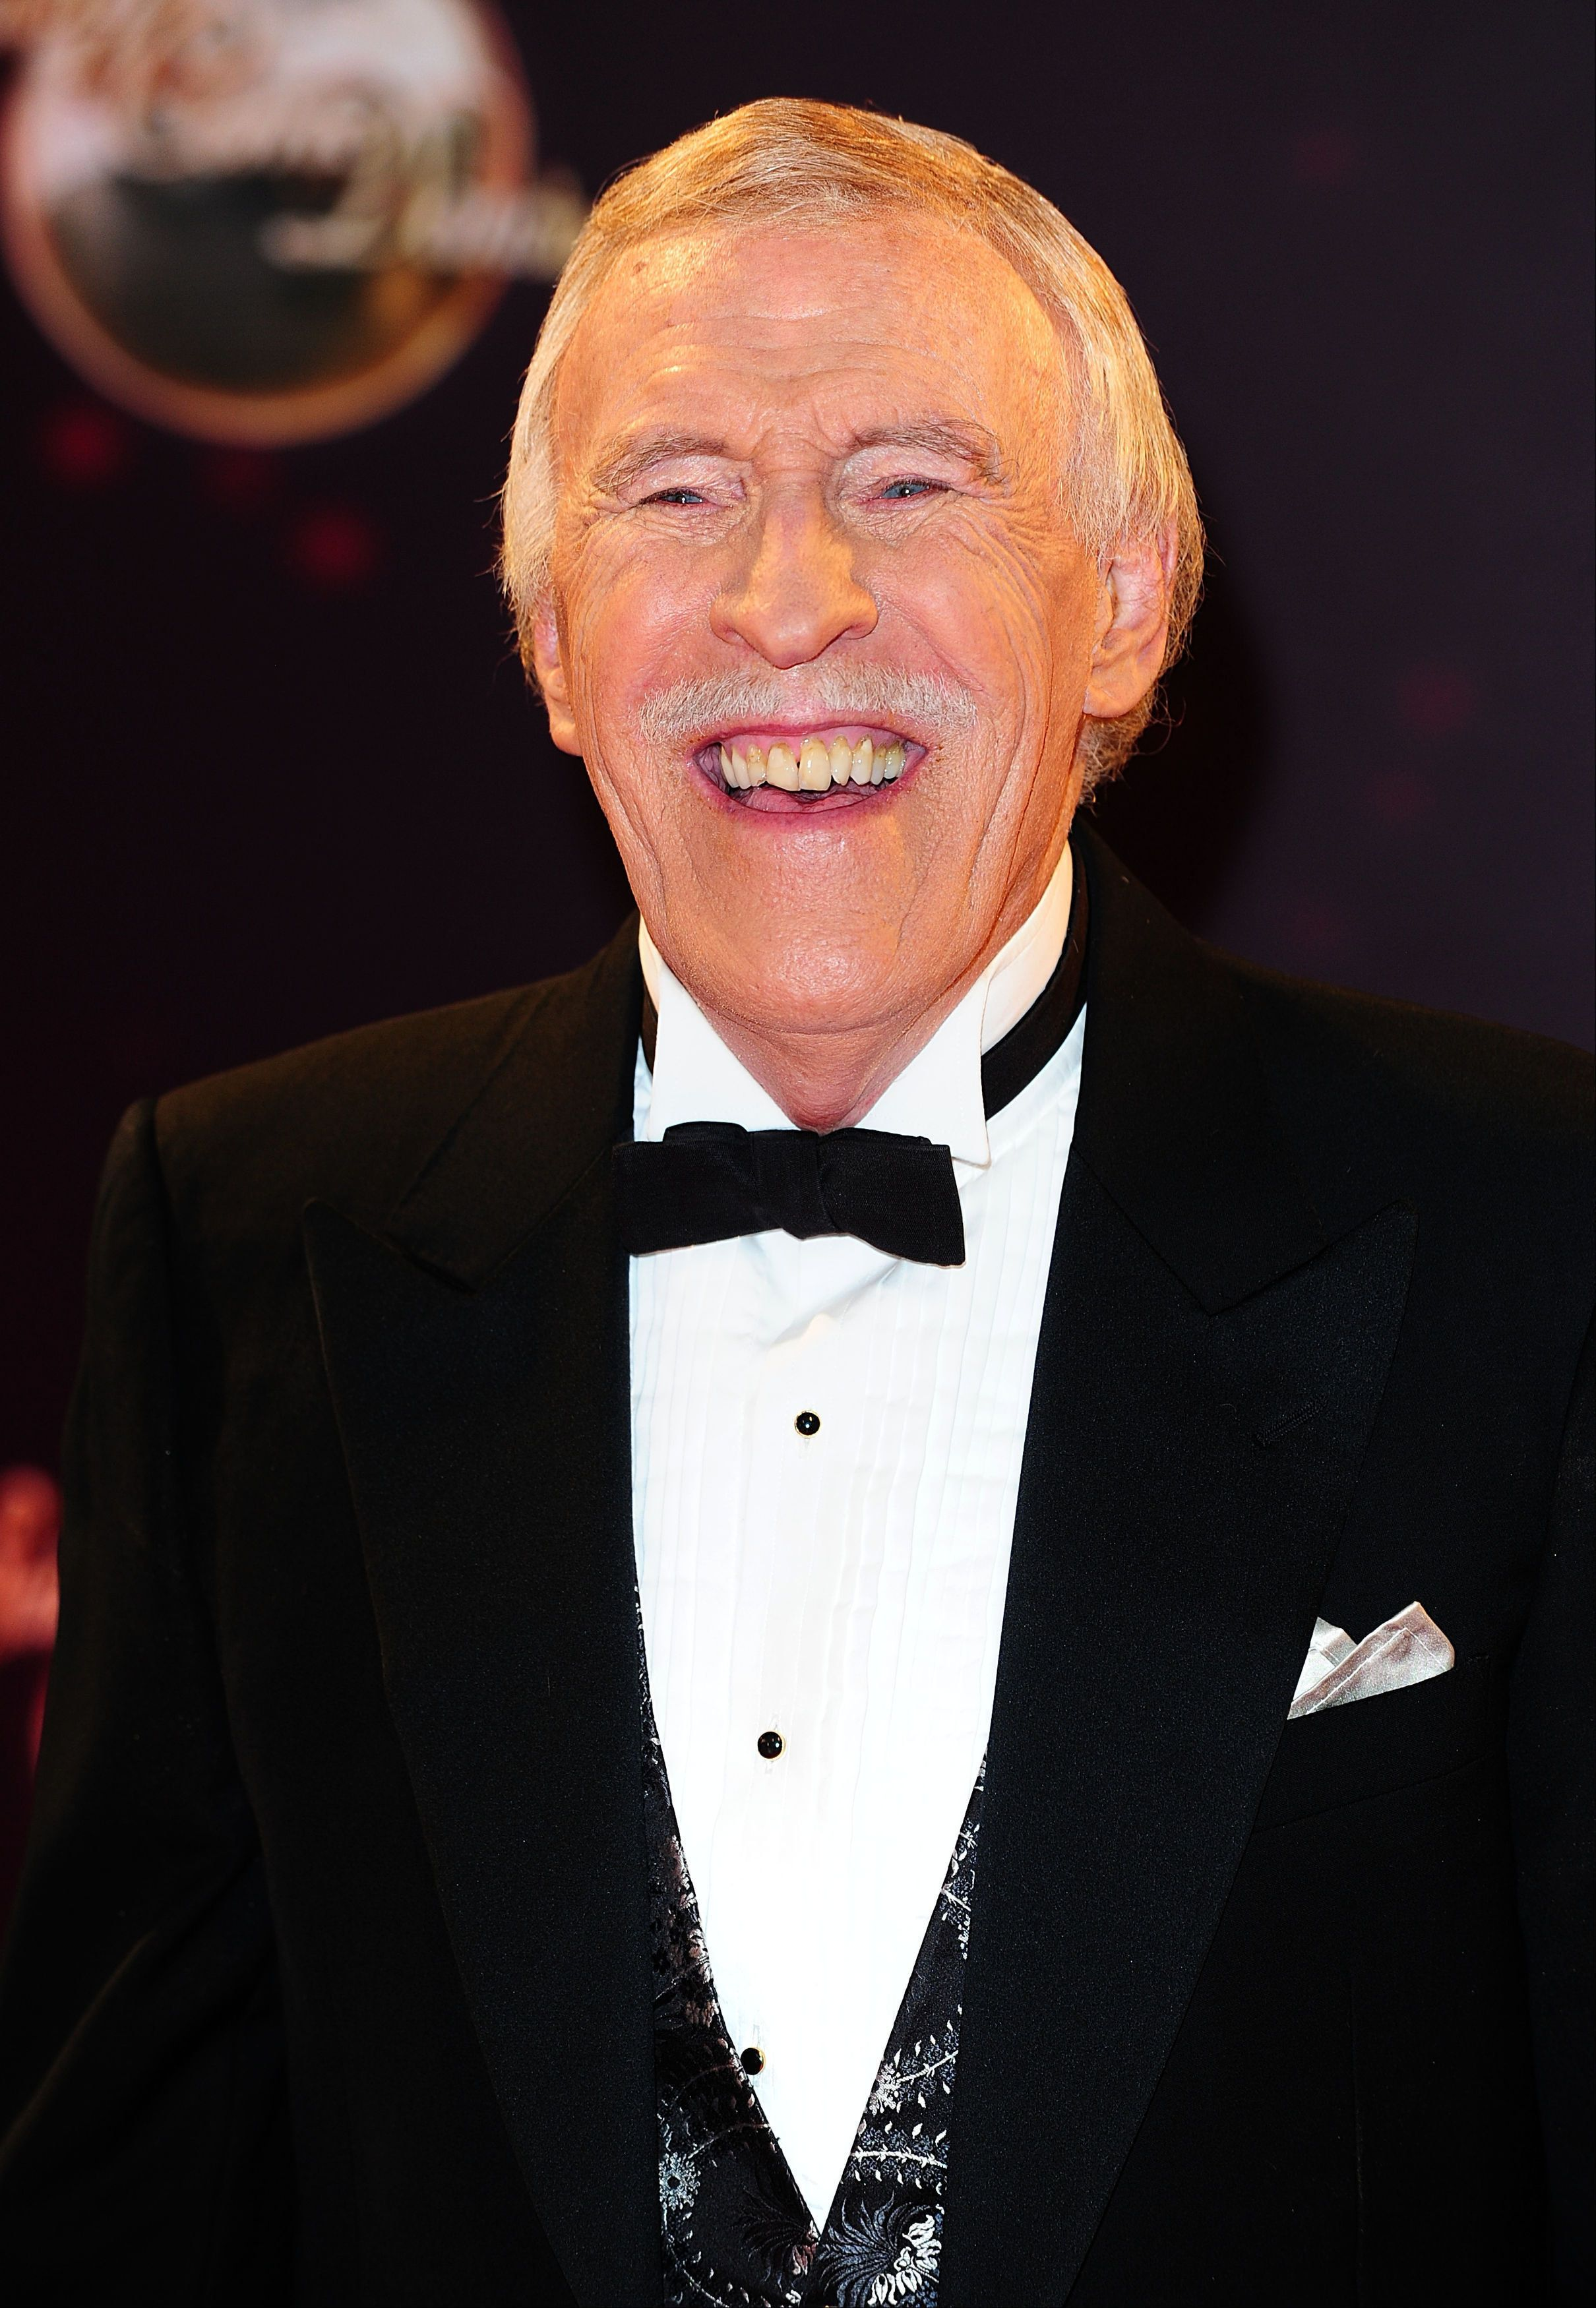 'Strictly Come Dancing' Producers Plan Fitting Send-Off For Sir Bruce Forsyth